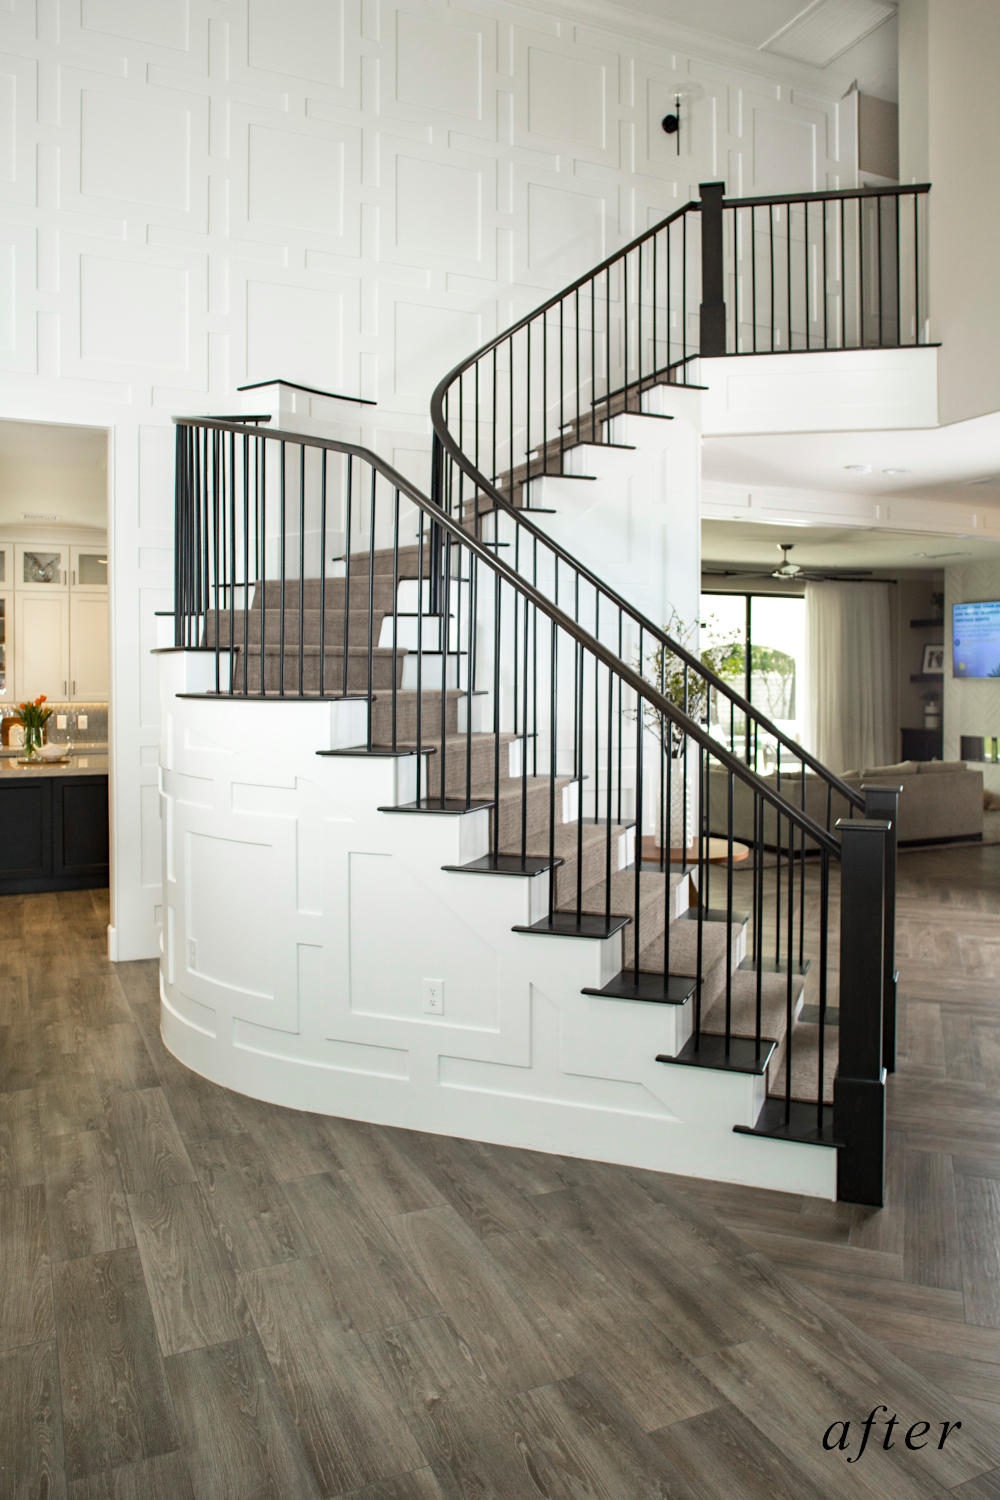 After remodel image: New home staircase with white wood paneling black wood handrails and steps.